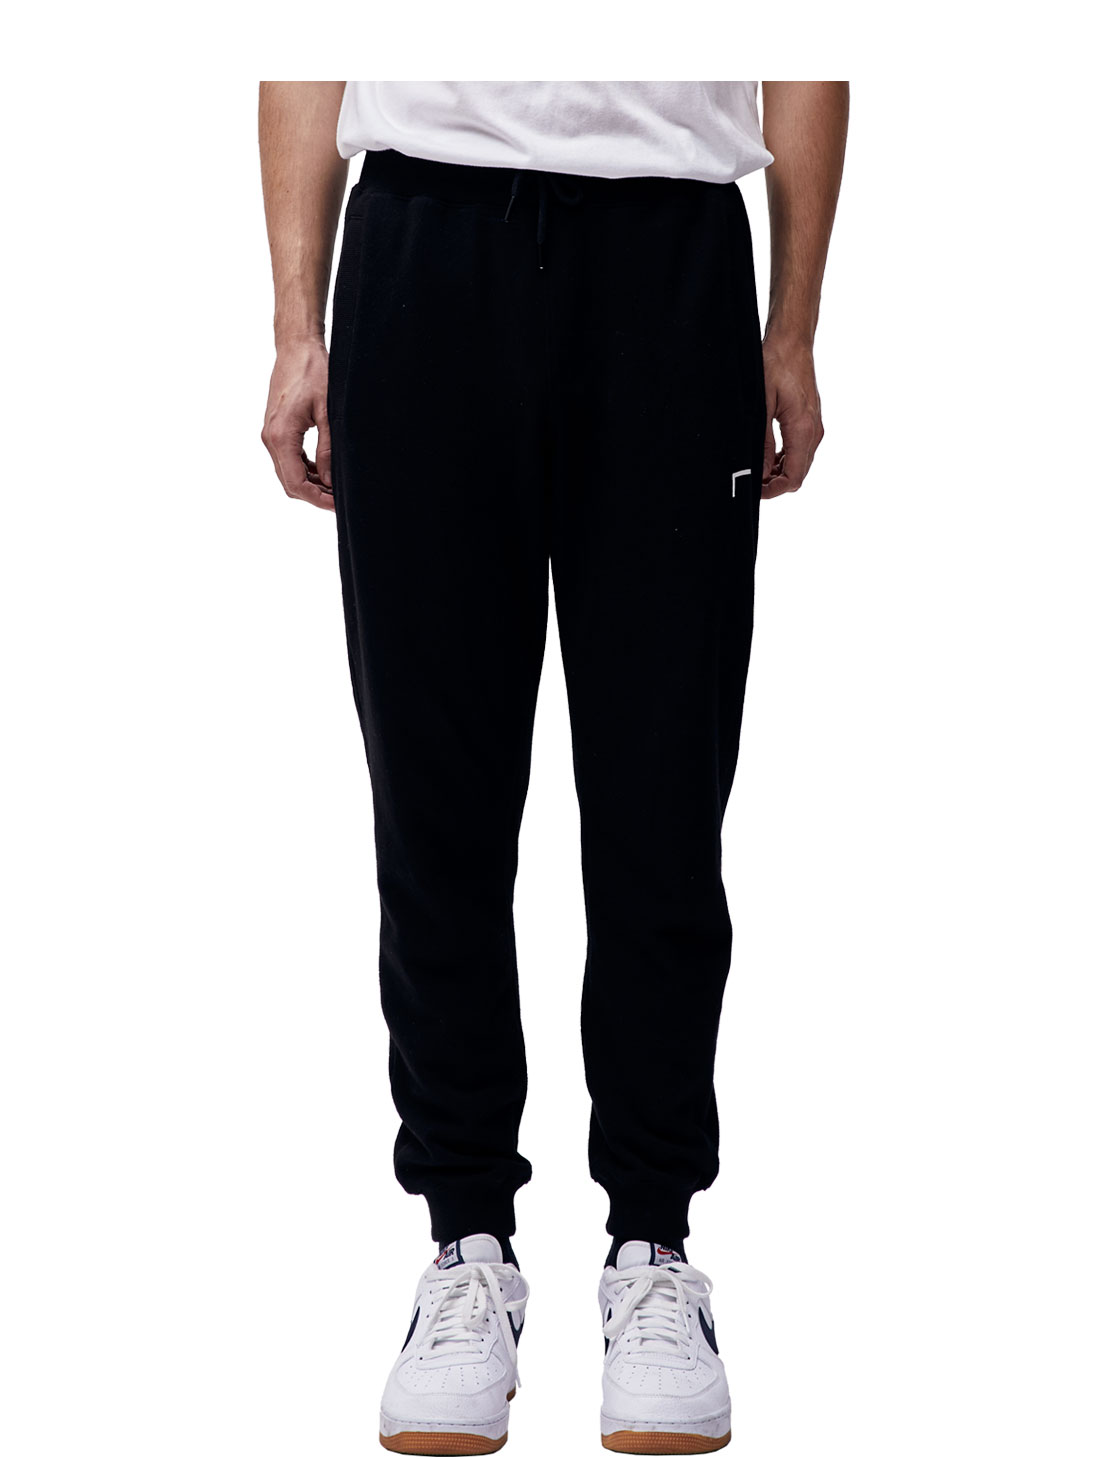 GOAL KNIT JOGGER PANTS - BLACK